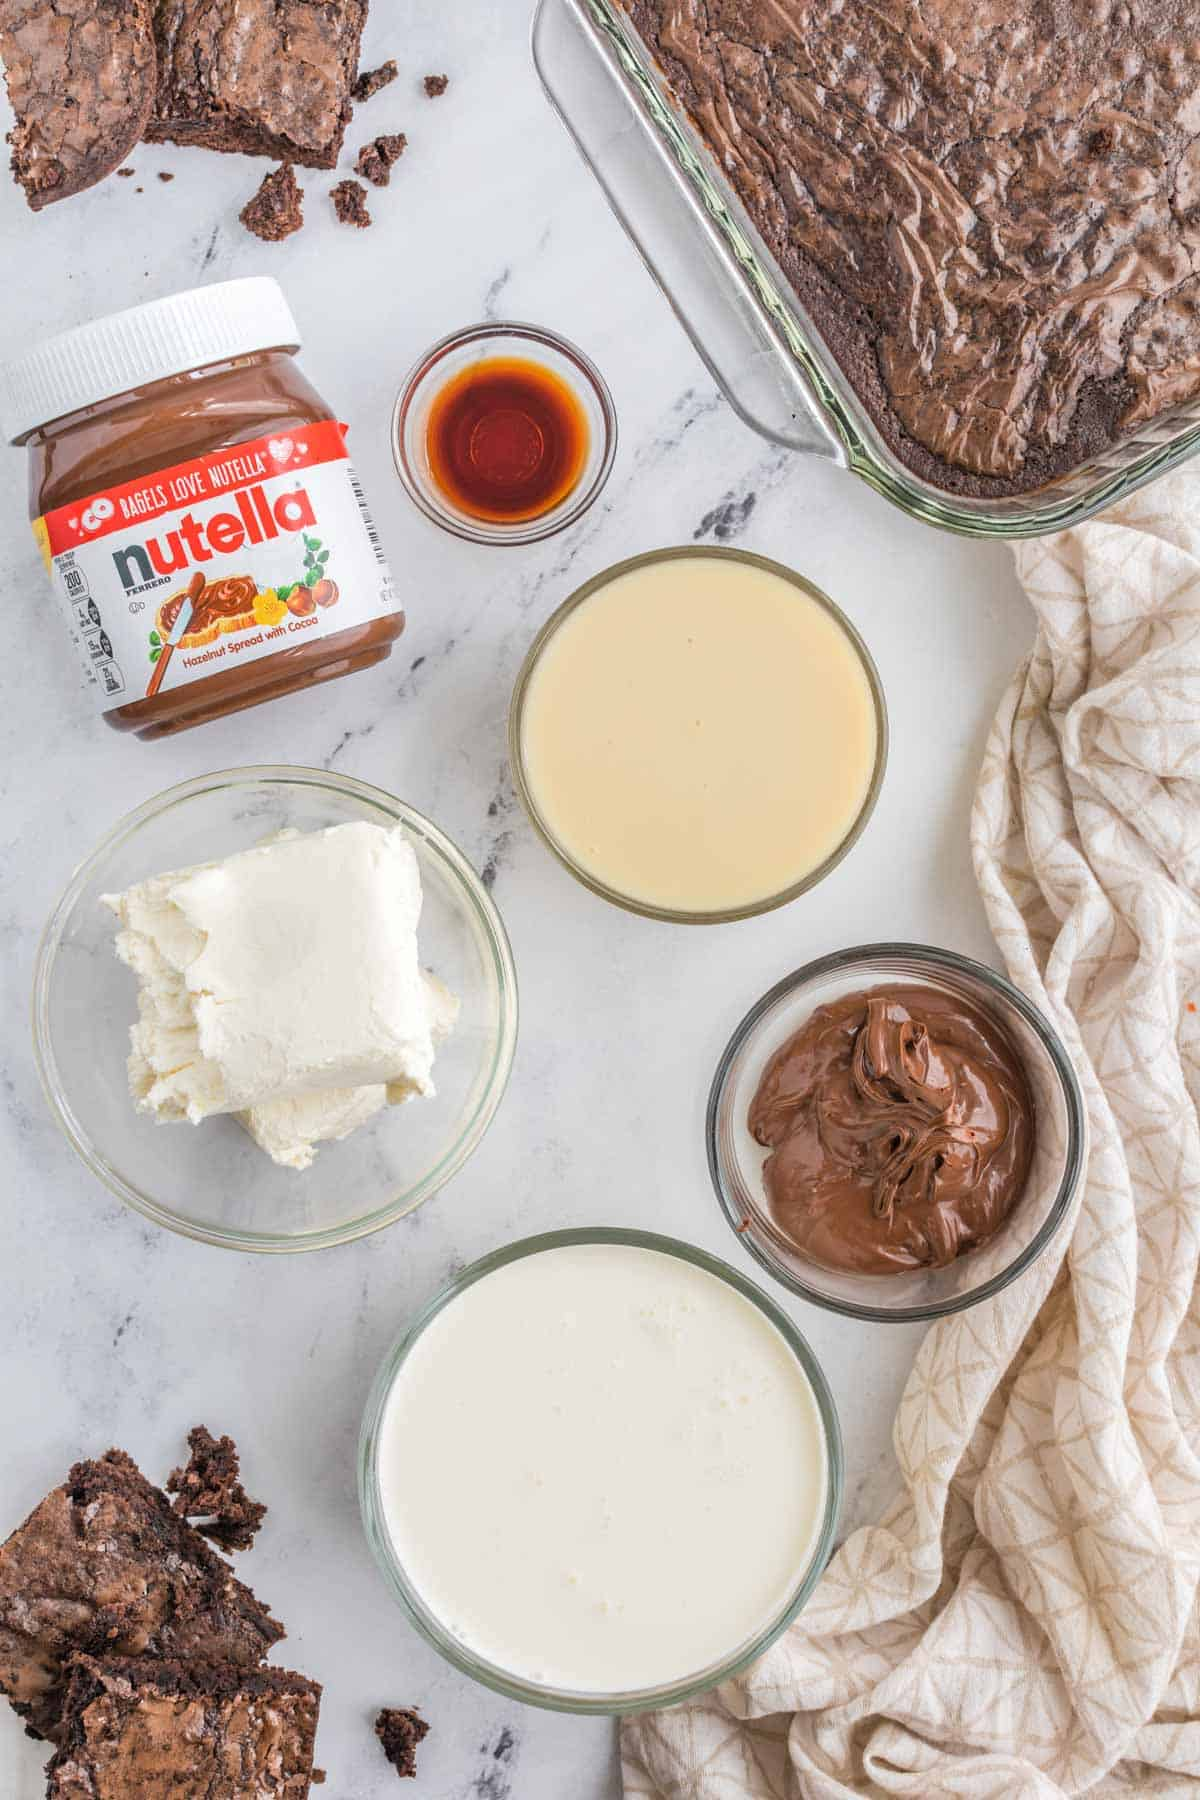 bowls of heavy cream, sweetened condense milk, cream cheese, and vanilla extract and a pan of and pieces of brownies on a marble countertop